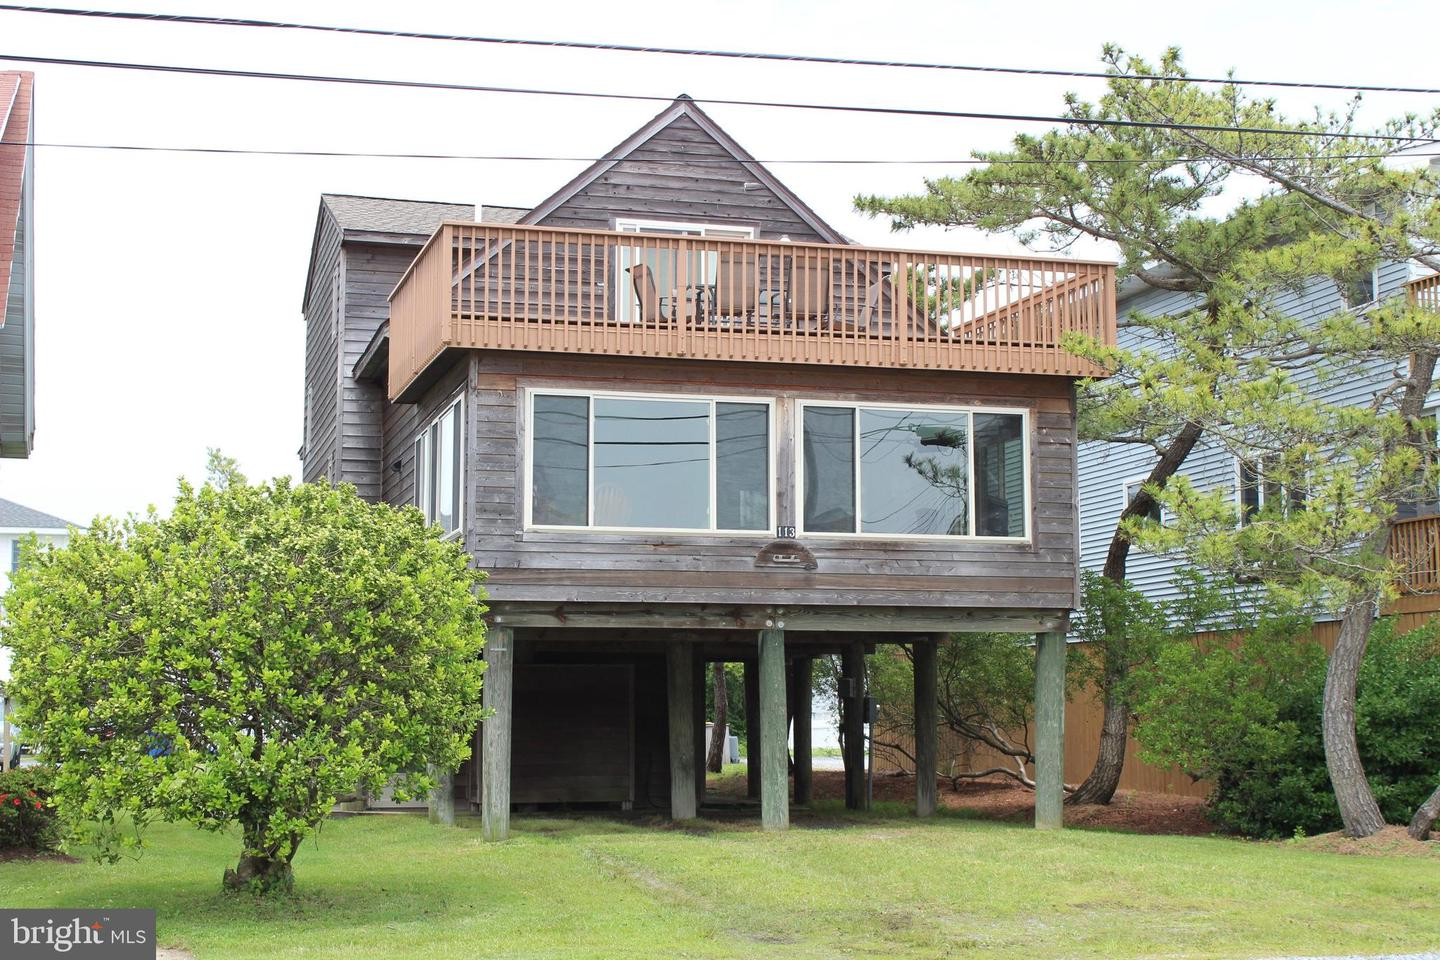 113 CENTRAL BLVD, BETHANY BEACH, DE - Jack Lingo Realtor